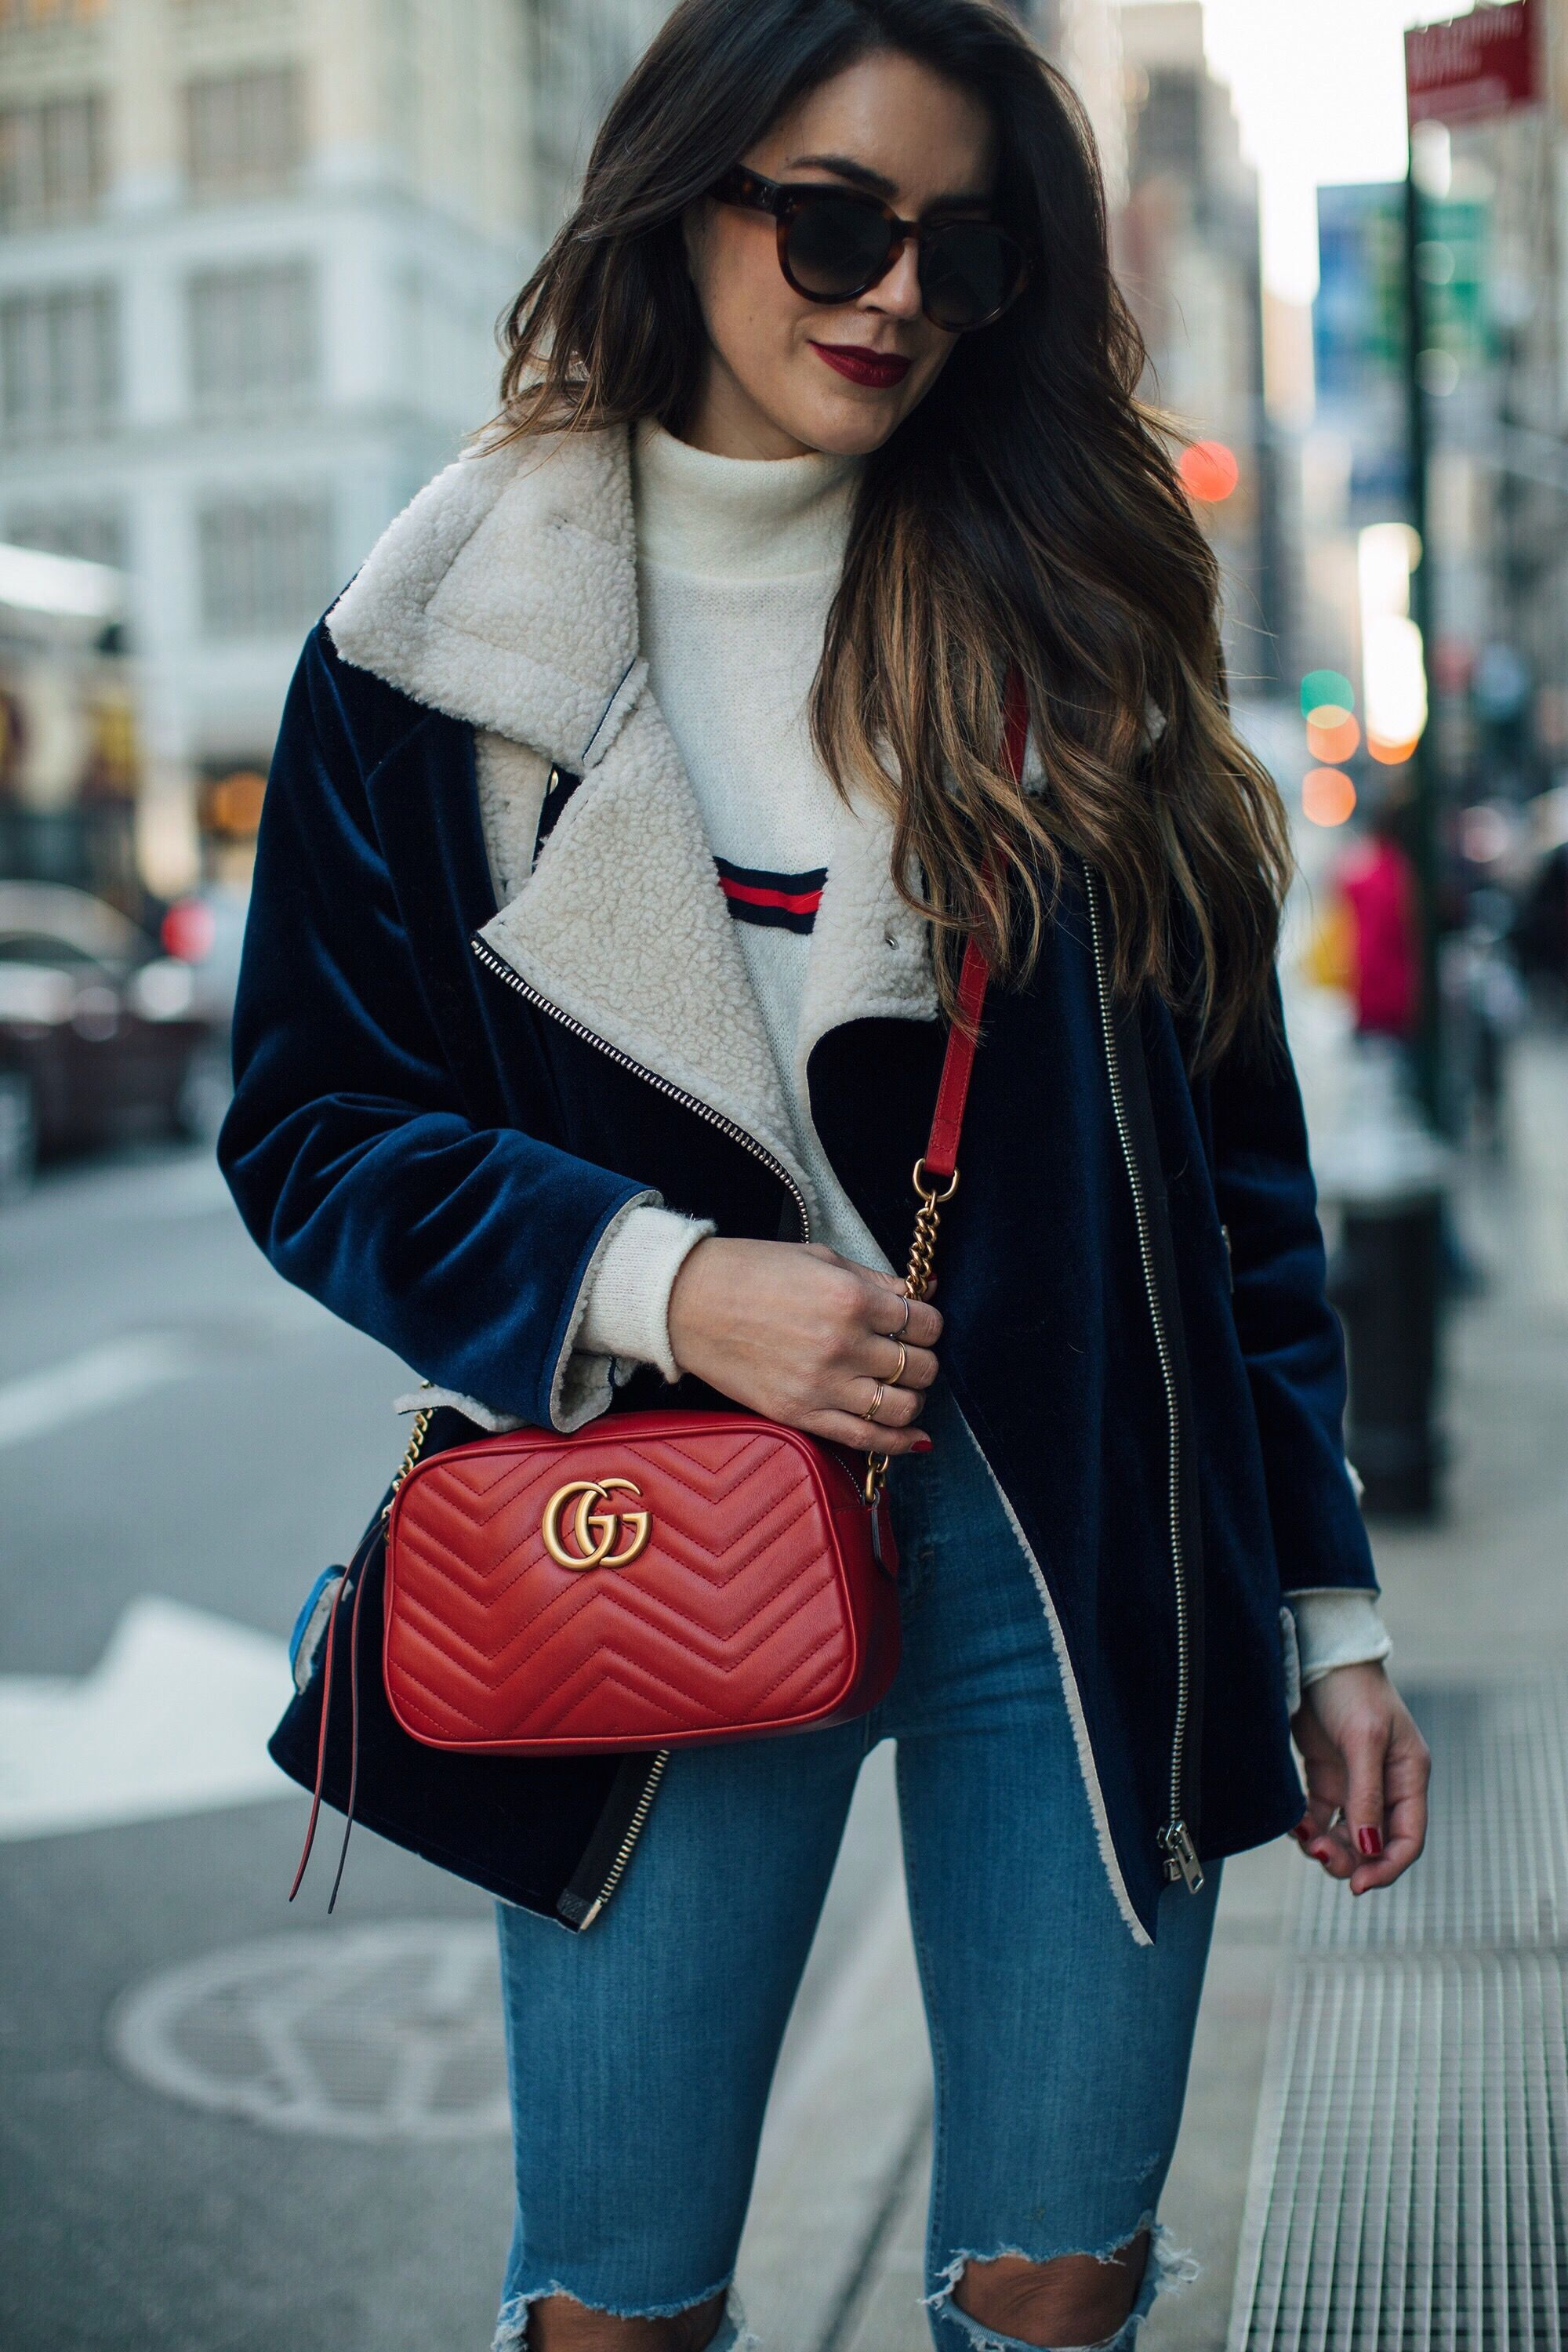 578717acee88 ... red hued Gucci shoulder bag. Thrifts and Threads.  streetstyle   streetfashion  blogger  NYFW  fashionweek  fashion  style  street